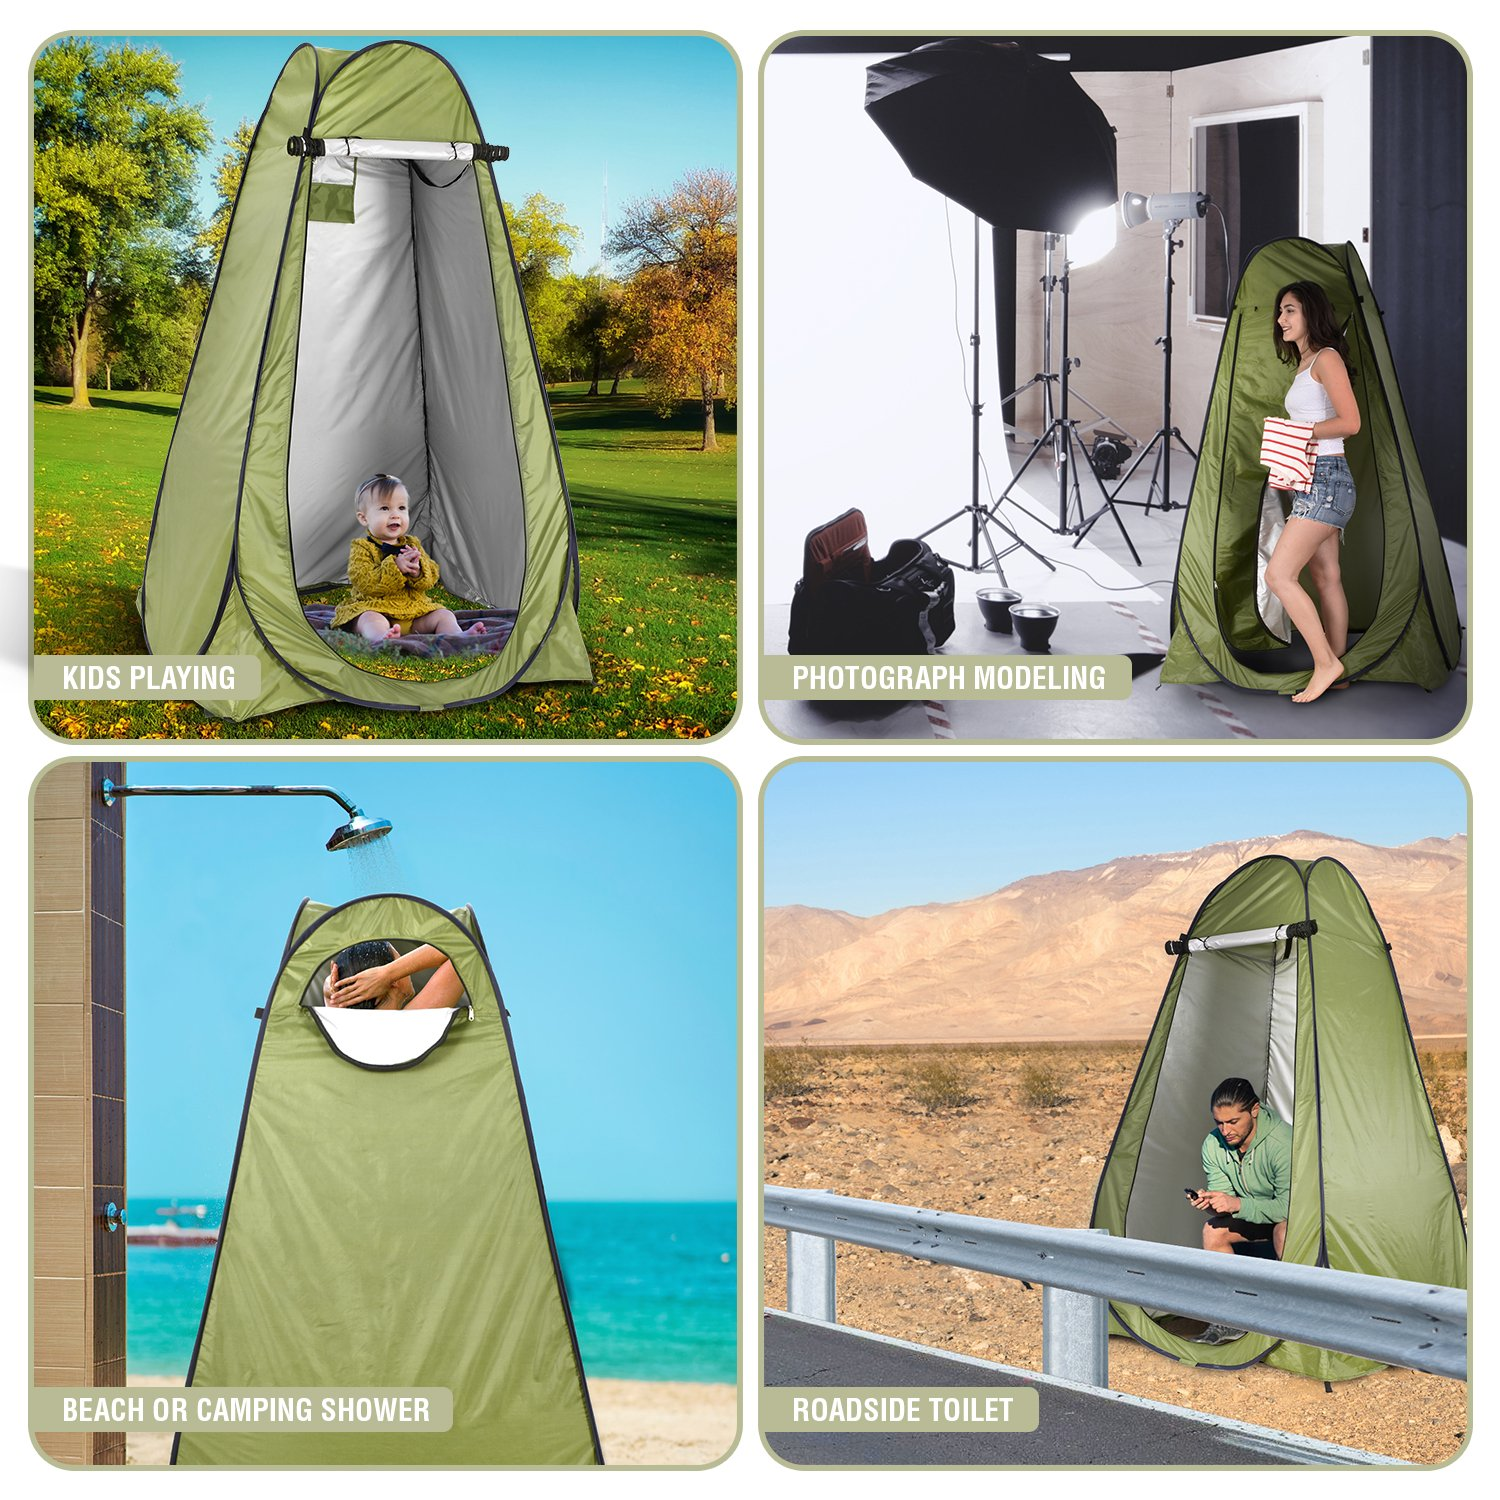 Fully automatic quick changing, shower, bathing, fishing, swimming and changing tent